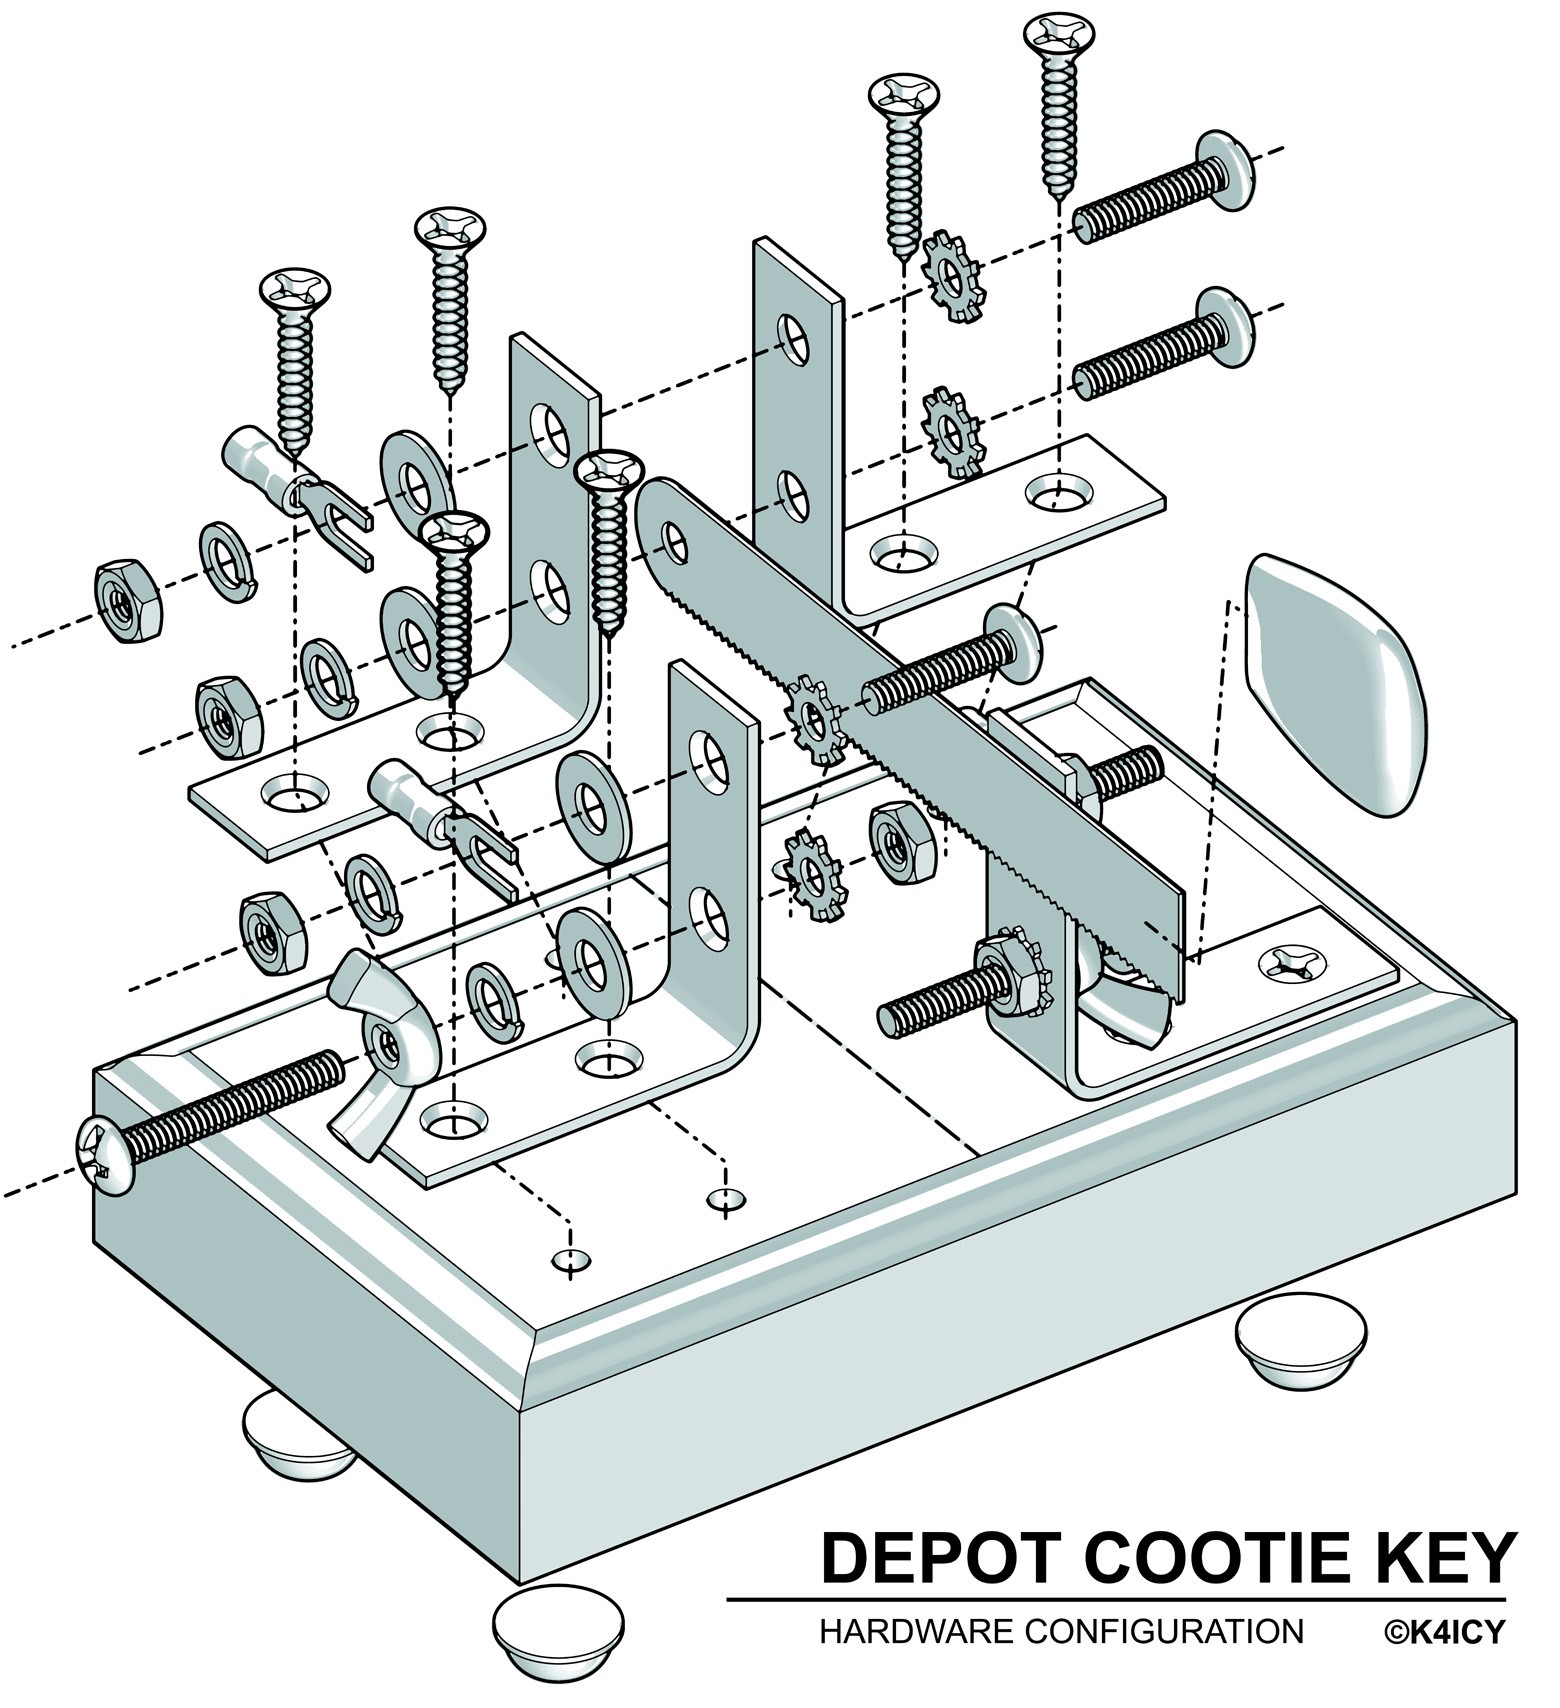 Depot Cootie SingleLever Paddle KICY Weekend Radio - Wiring diagram telegraph key